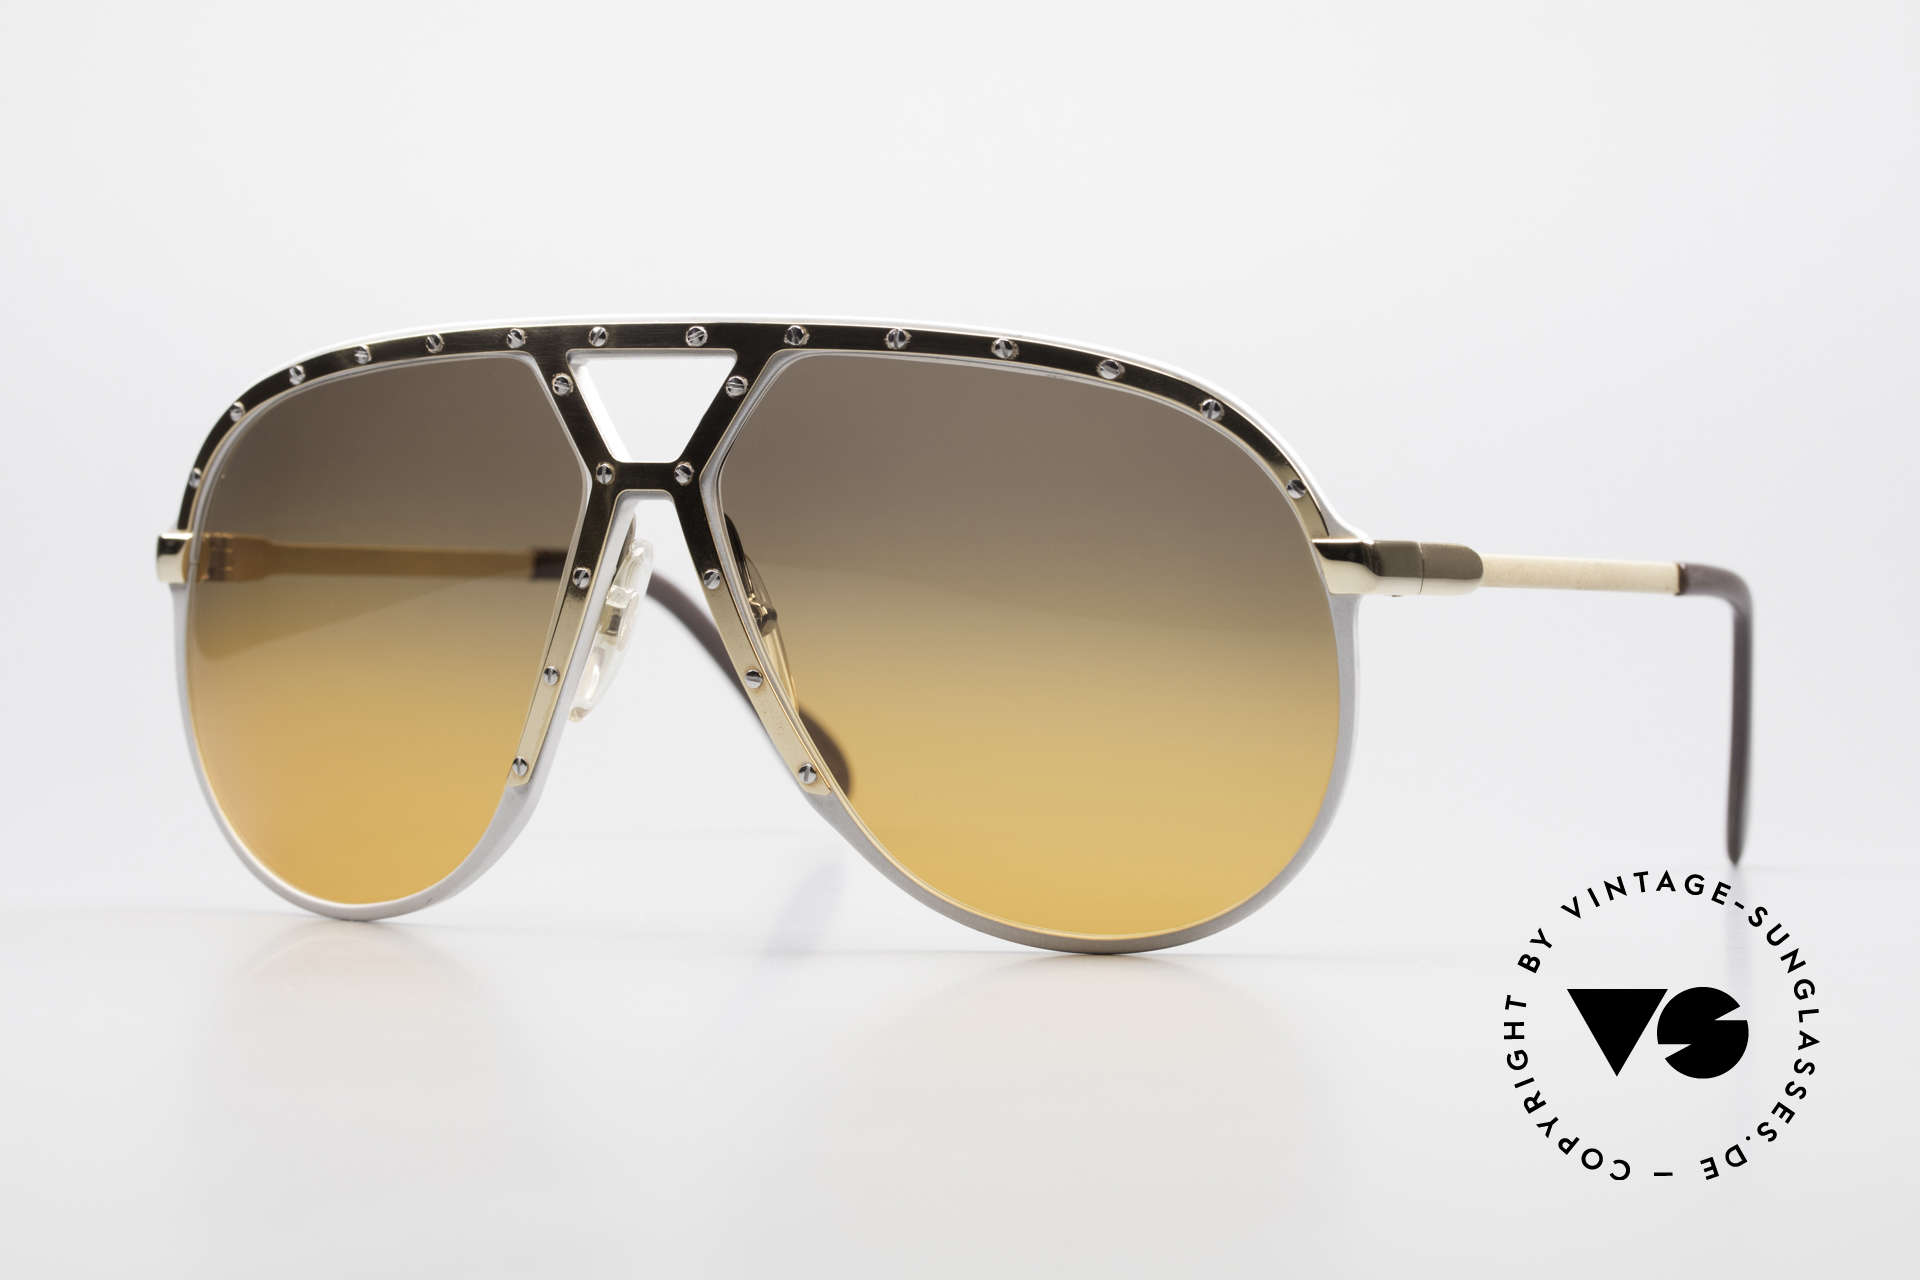 Alpina M1 80's Sunglasses One Of A Kind, old Alpina M1: real WEST GERMANY sunglasses, Made for Men